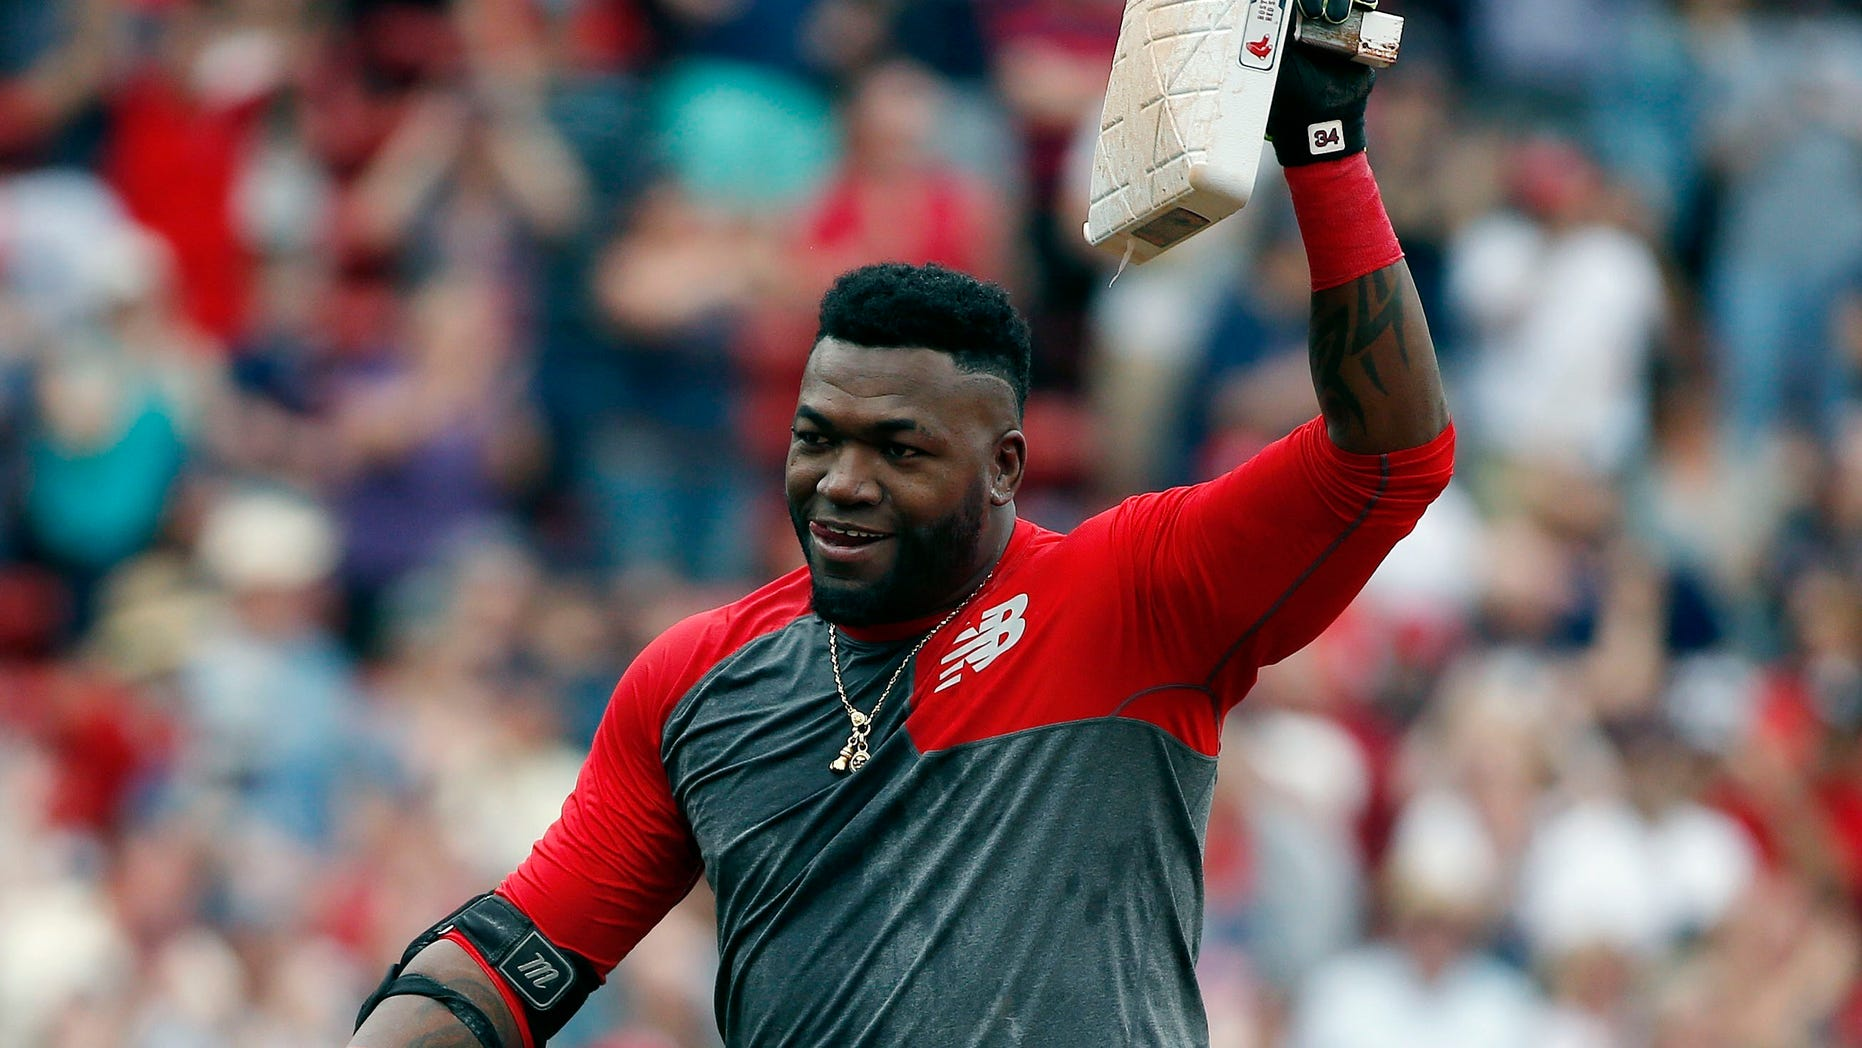 Boston Red Sox's David Ortiz holds up second base after hitting the game-winning RBI double during the 11th inning of a baseball game against the Houston Astros in Boston, Saturday, May 14, 2016. The Red Sox won 6-5. (AP Photo/Michael Dwyer)